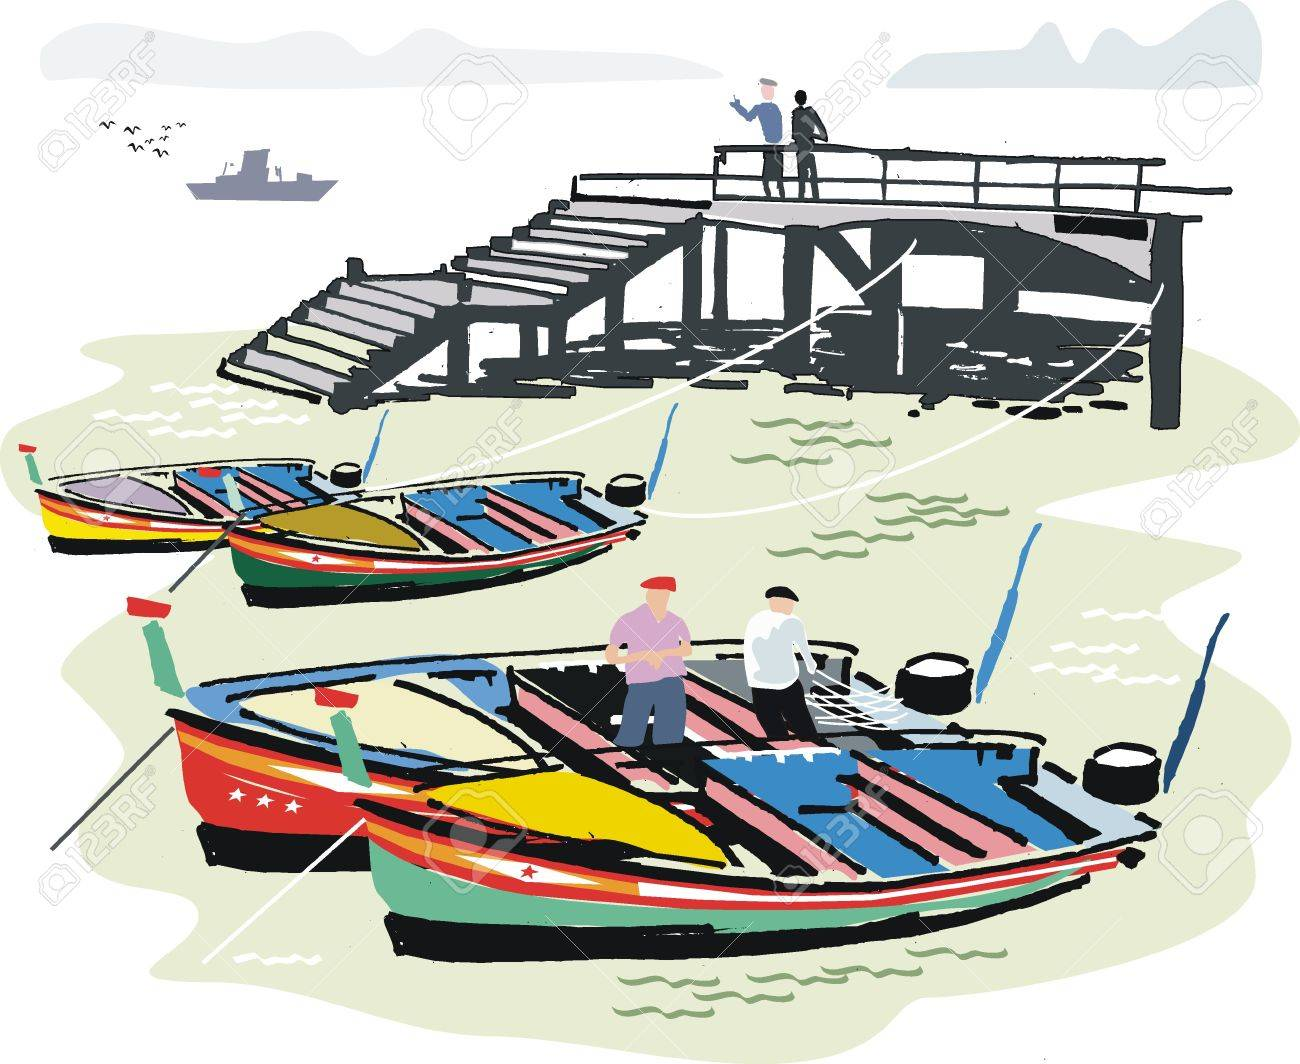 fishing boats in harbor portugal illustration royalty free